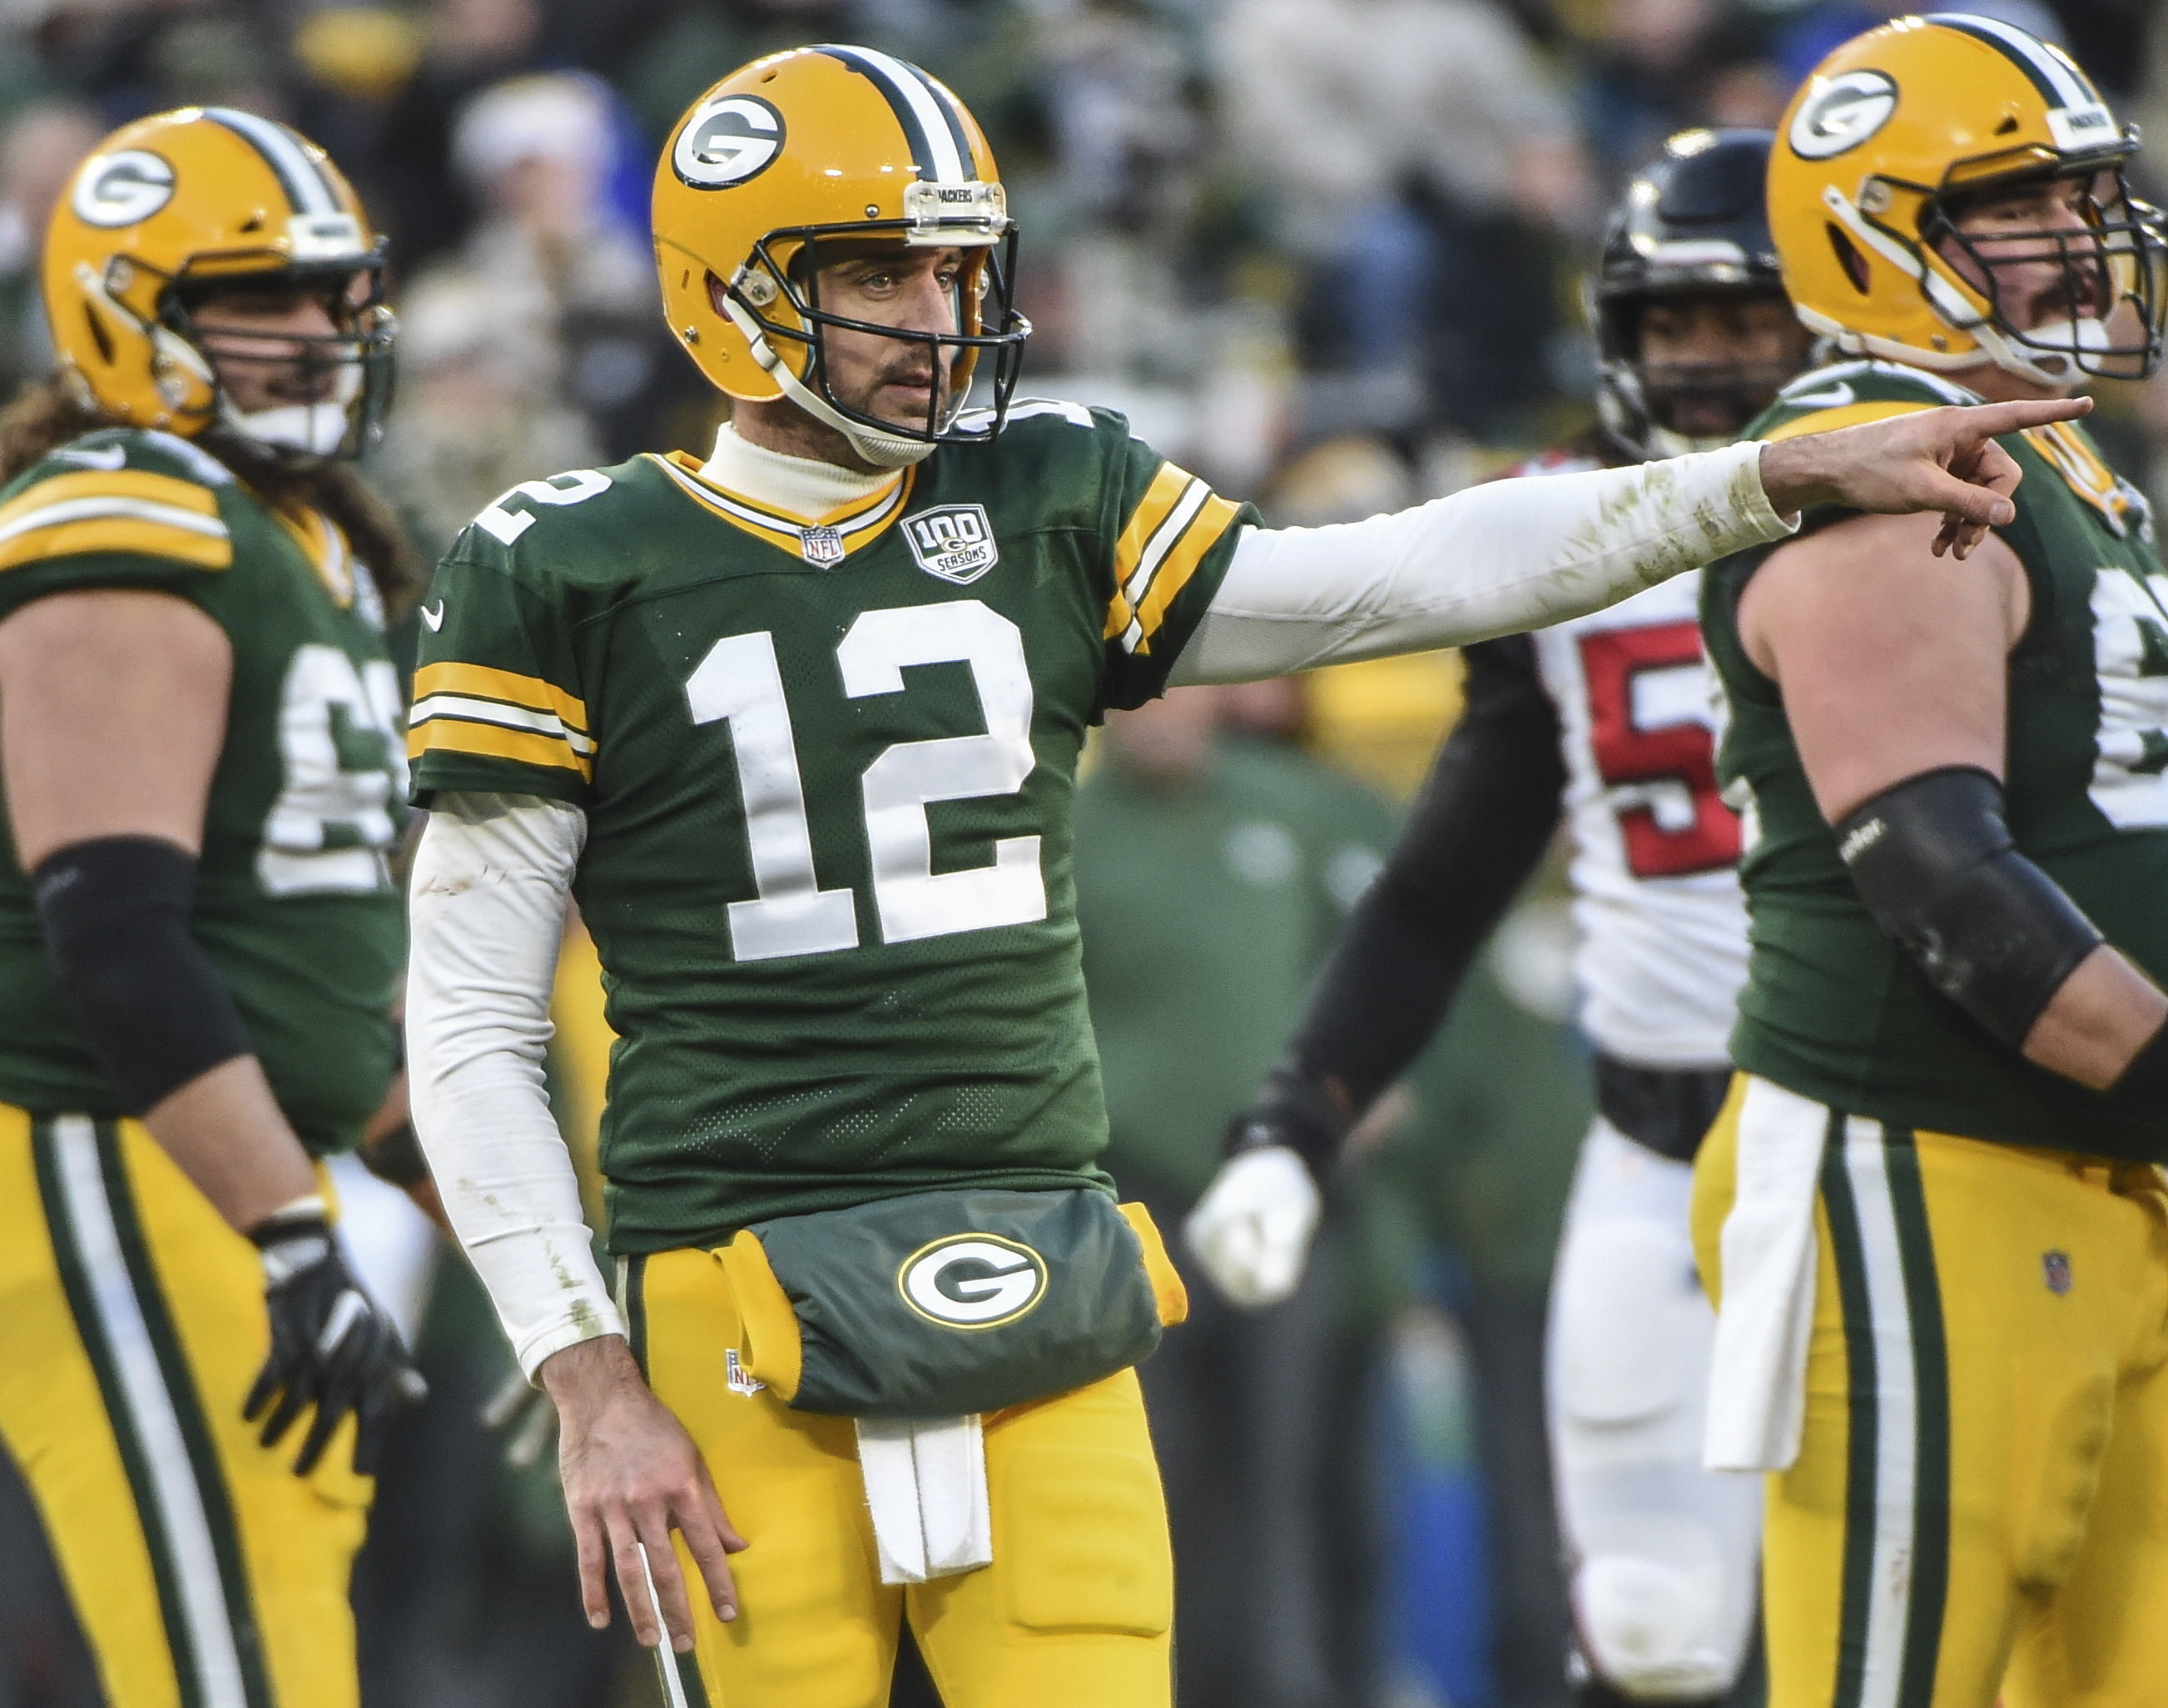 Six Key Factors That Will Determine the Winner of Packers vs Falcons